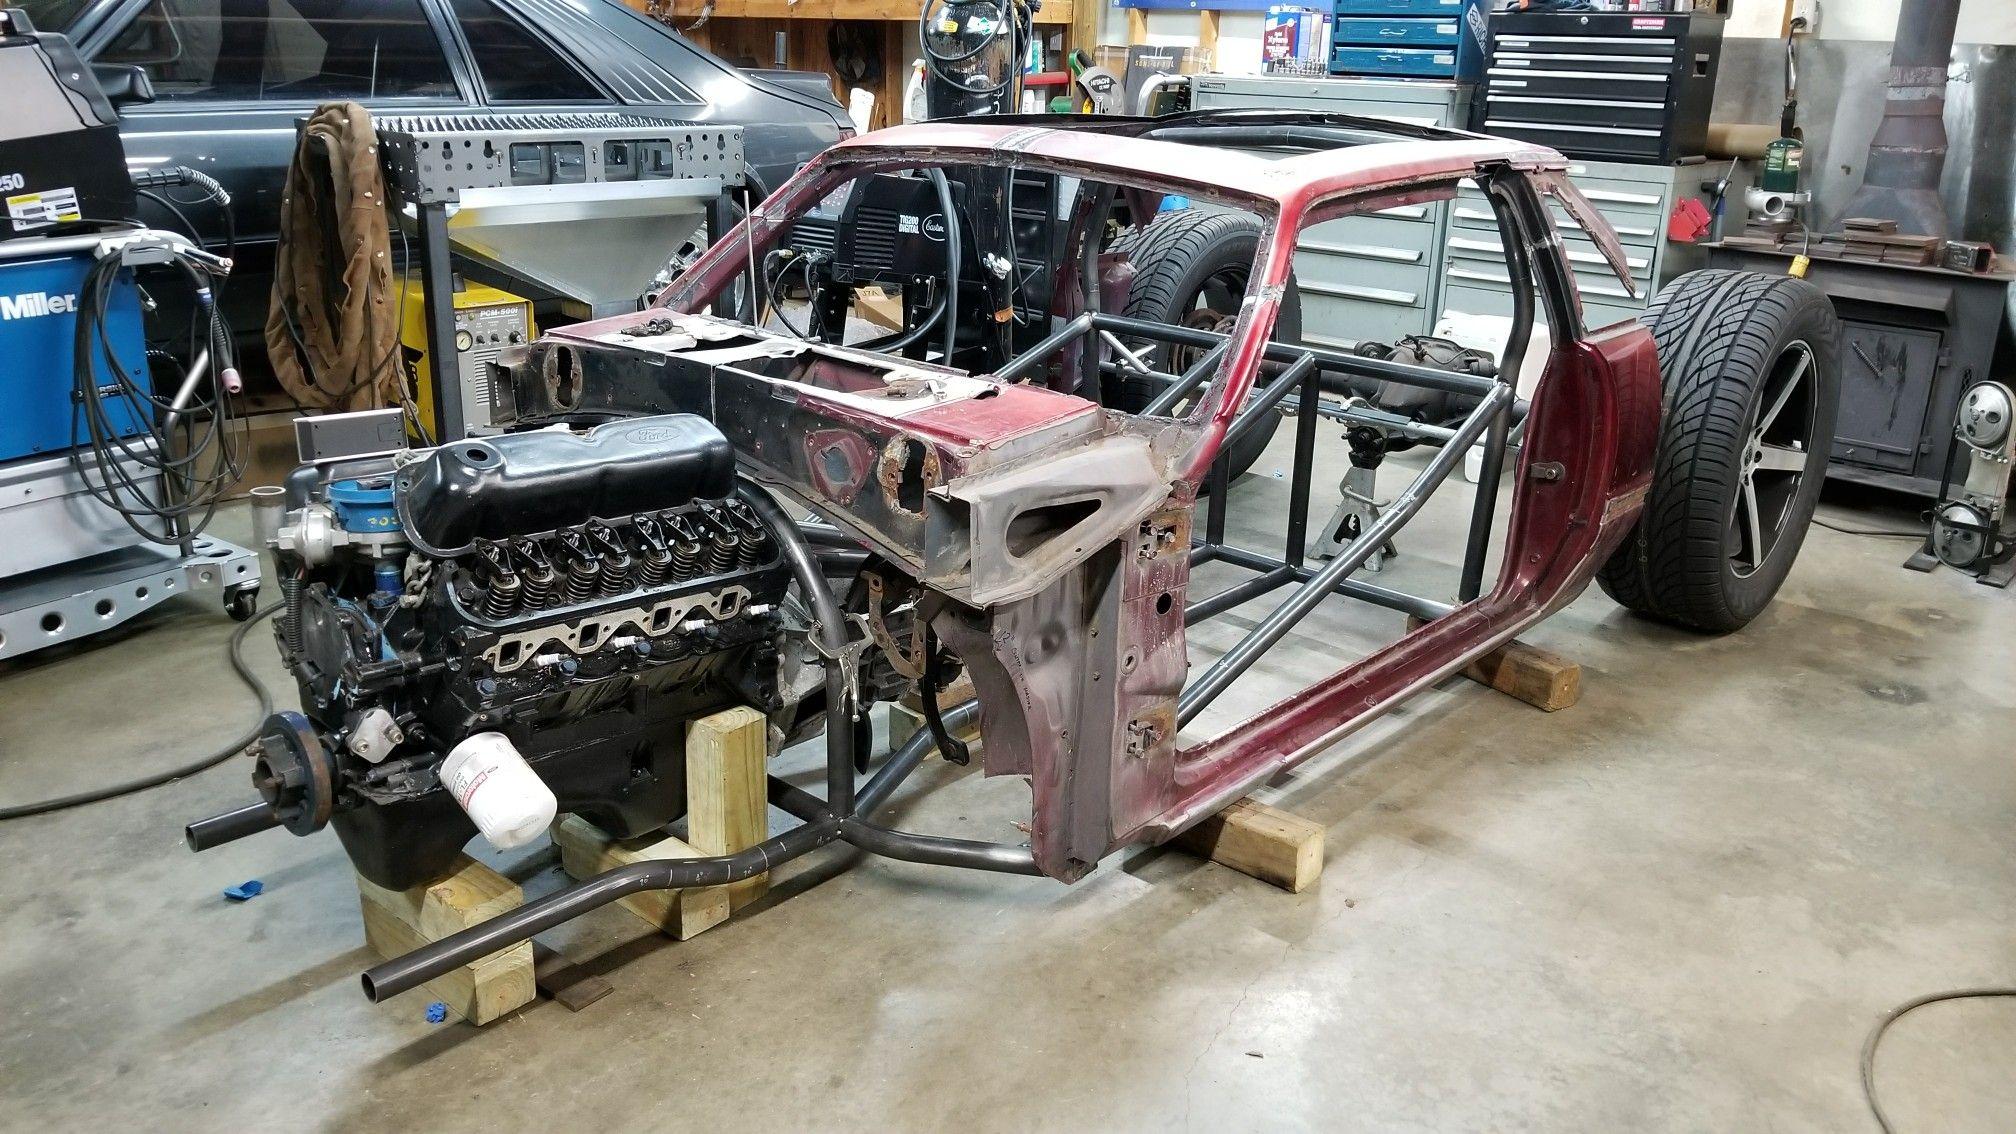 medium resolution of mustang foxbody hot rod build bibbster complete build can be seen on the fab forums youtube channel